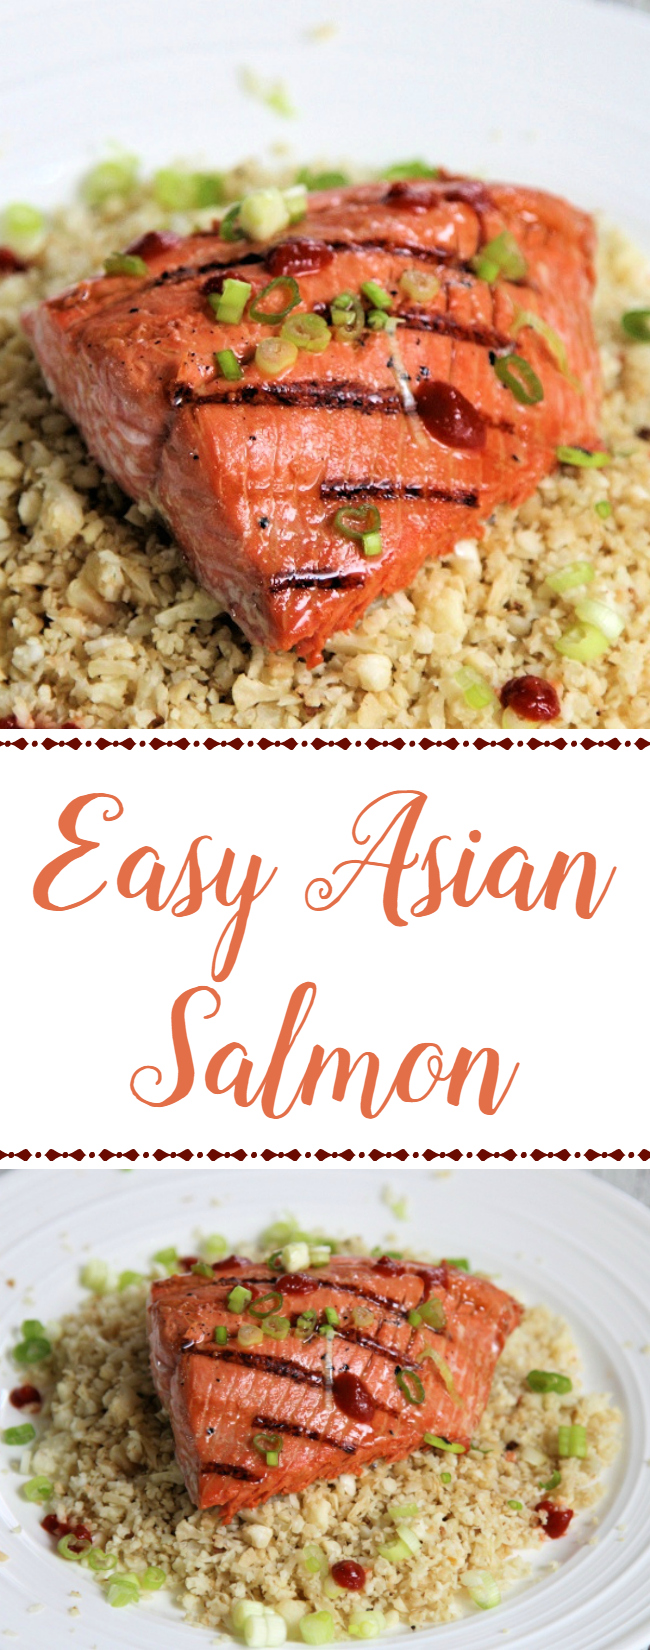 Easy Asian Salmon